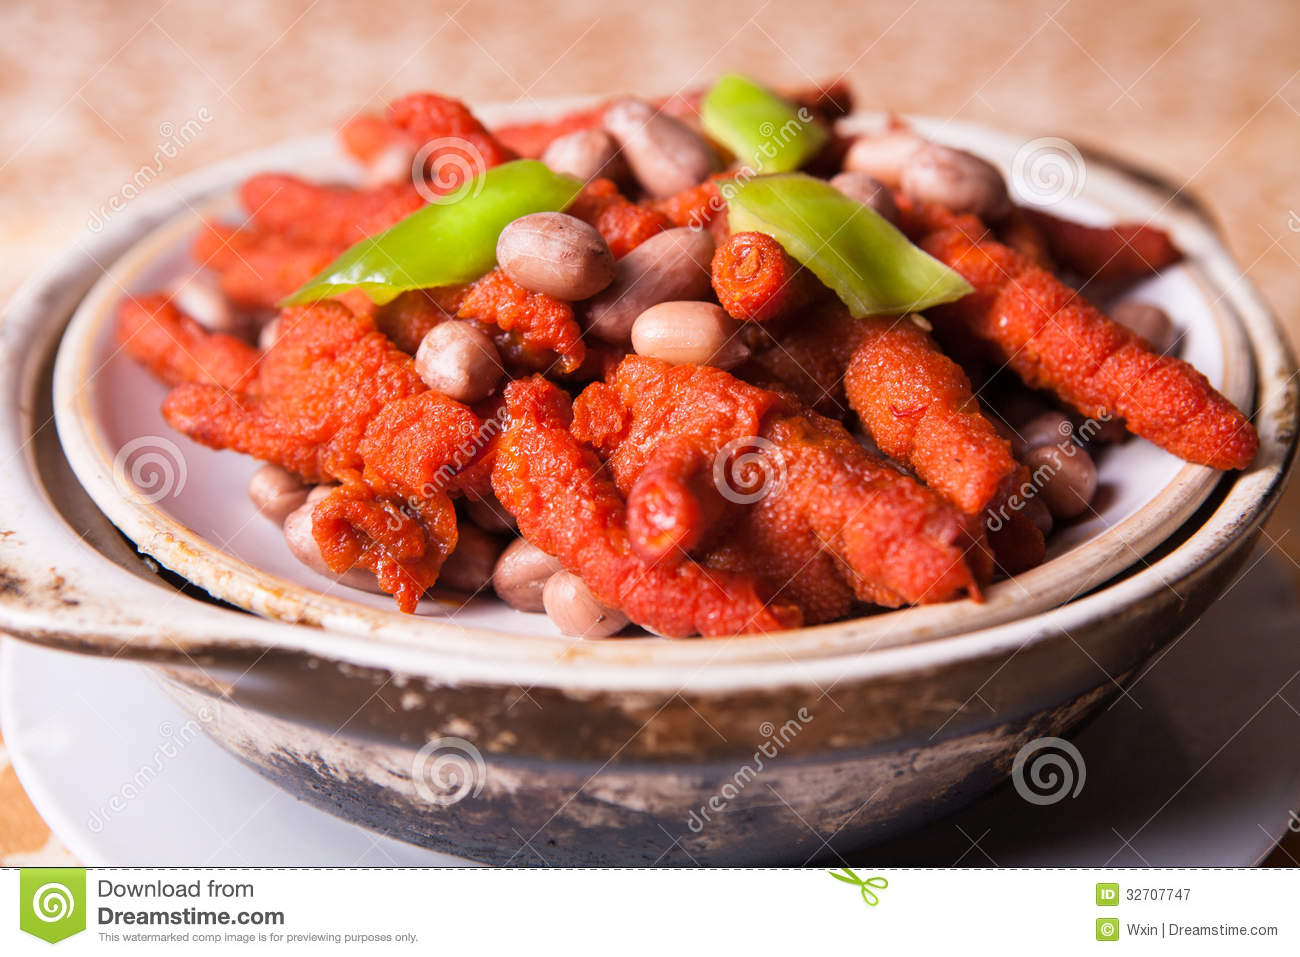 Chinese delicious food royalty free stock photography image 32707747 - Delicious chinese cuisine ...